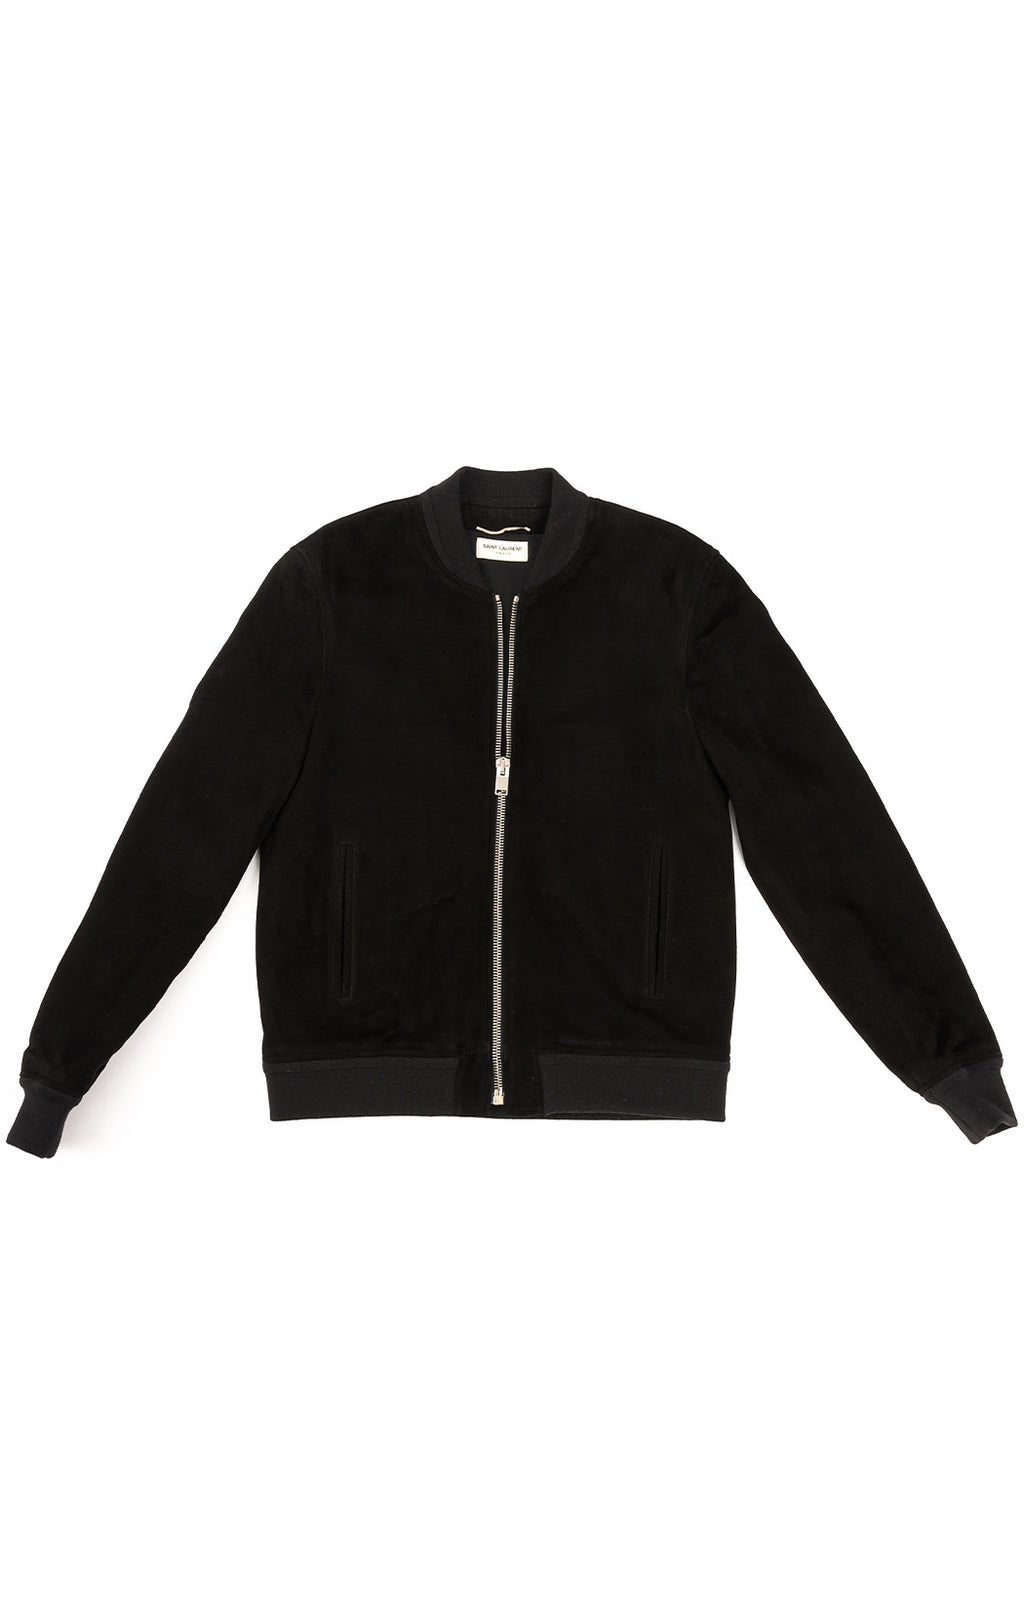 Front view of SAINT LAURENT Jacket Size: No size tags fits like men's medium